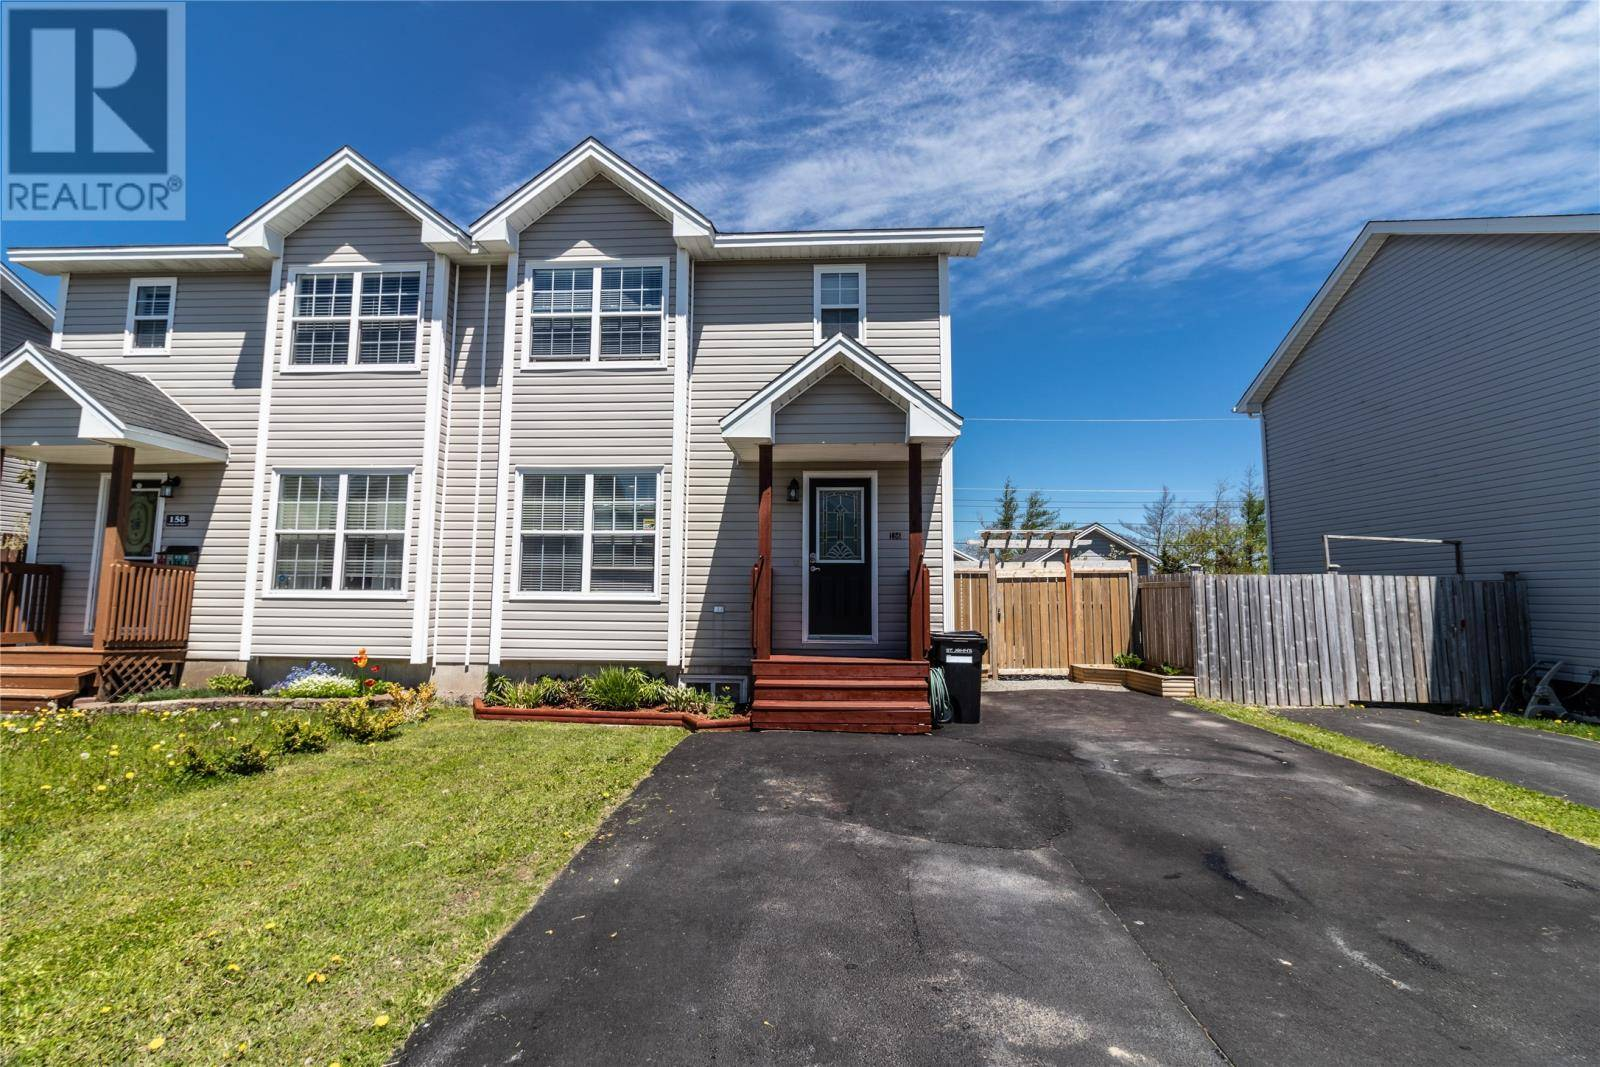 House for sale at 156 Green Acre Dr St. John's Newfoundland - MLS: 1198067